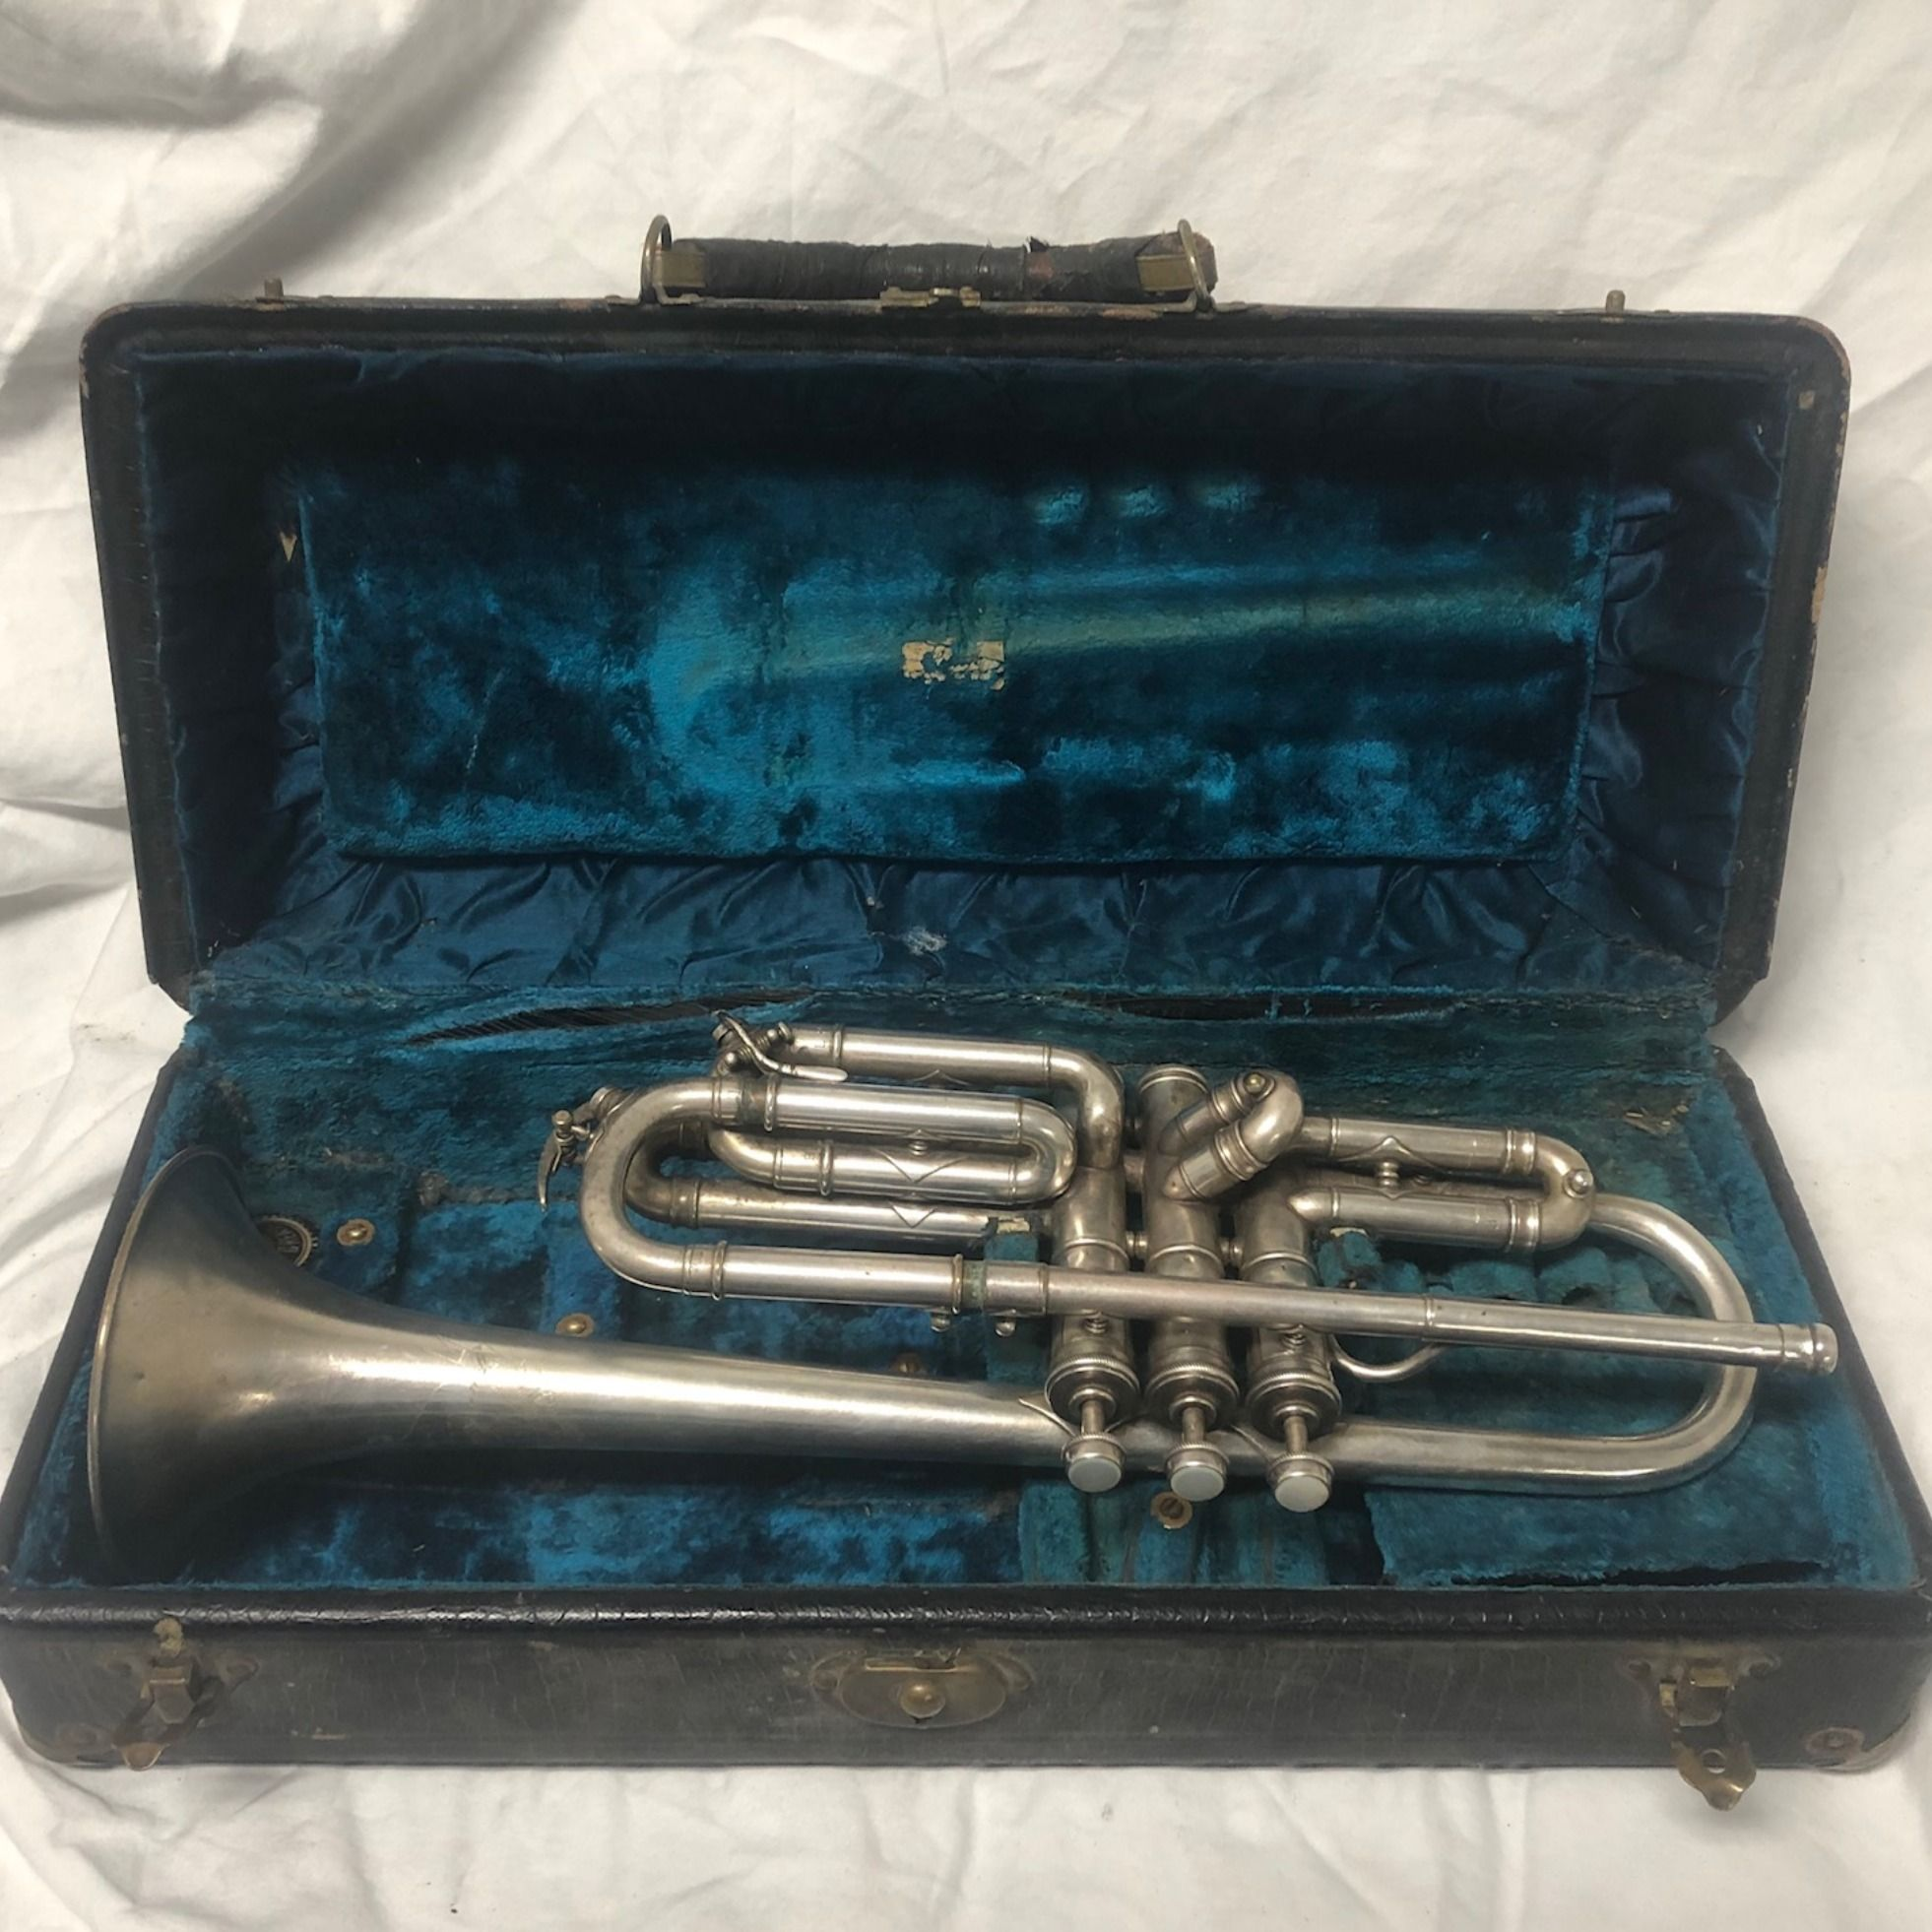 Details about King Vintage 1920's Silver Alto Saxophone in